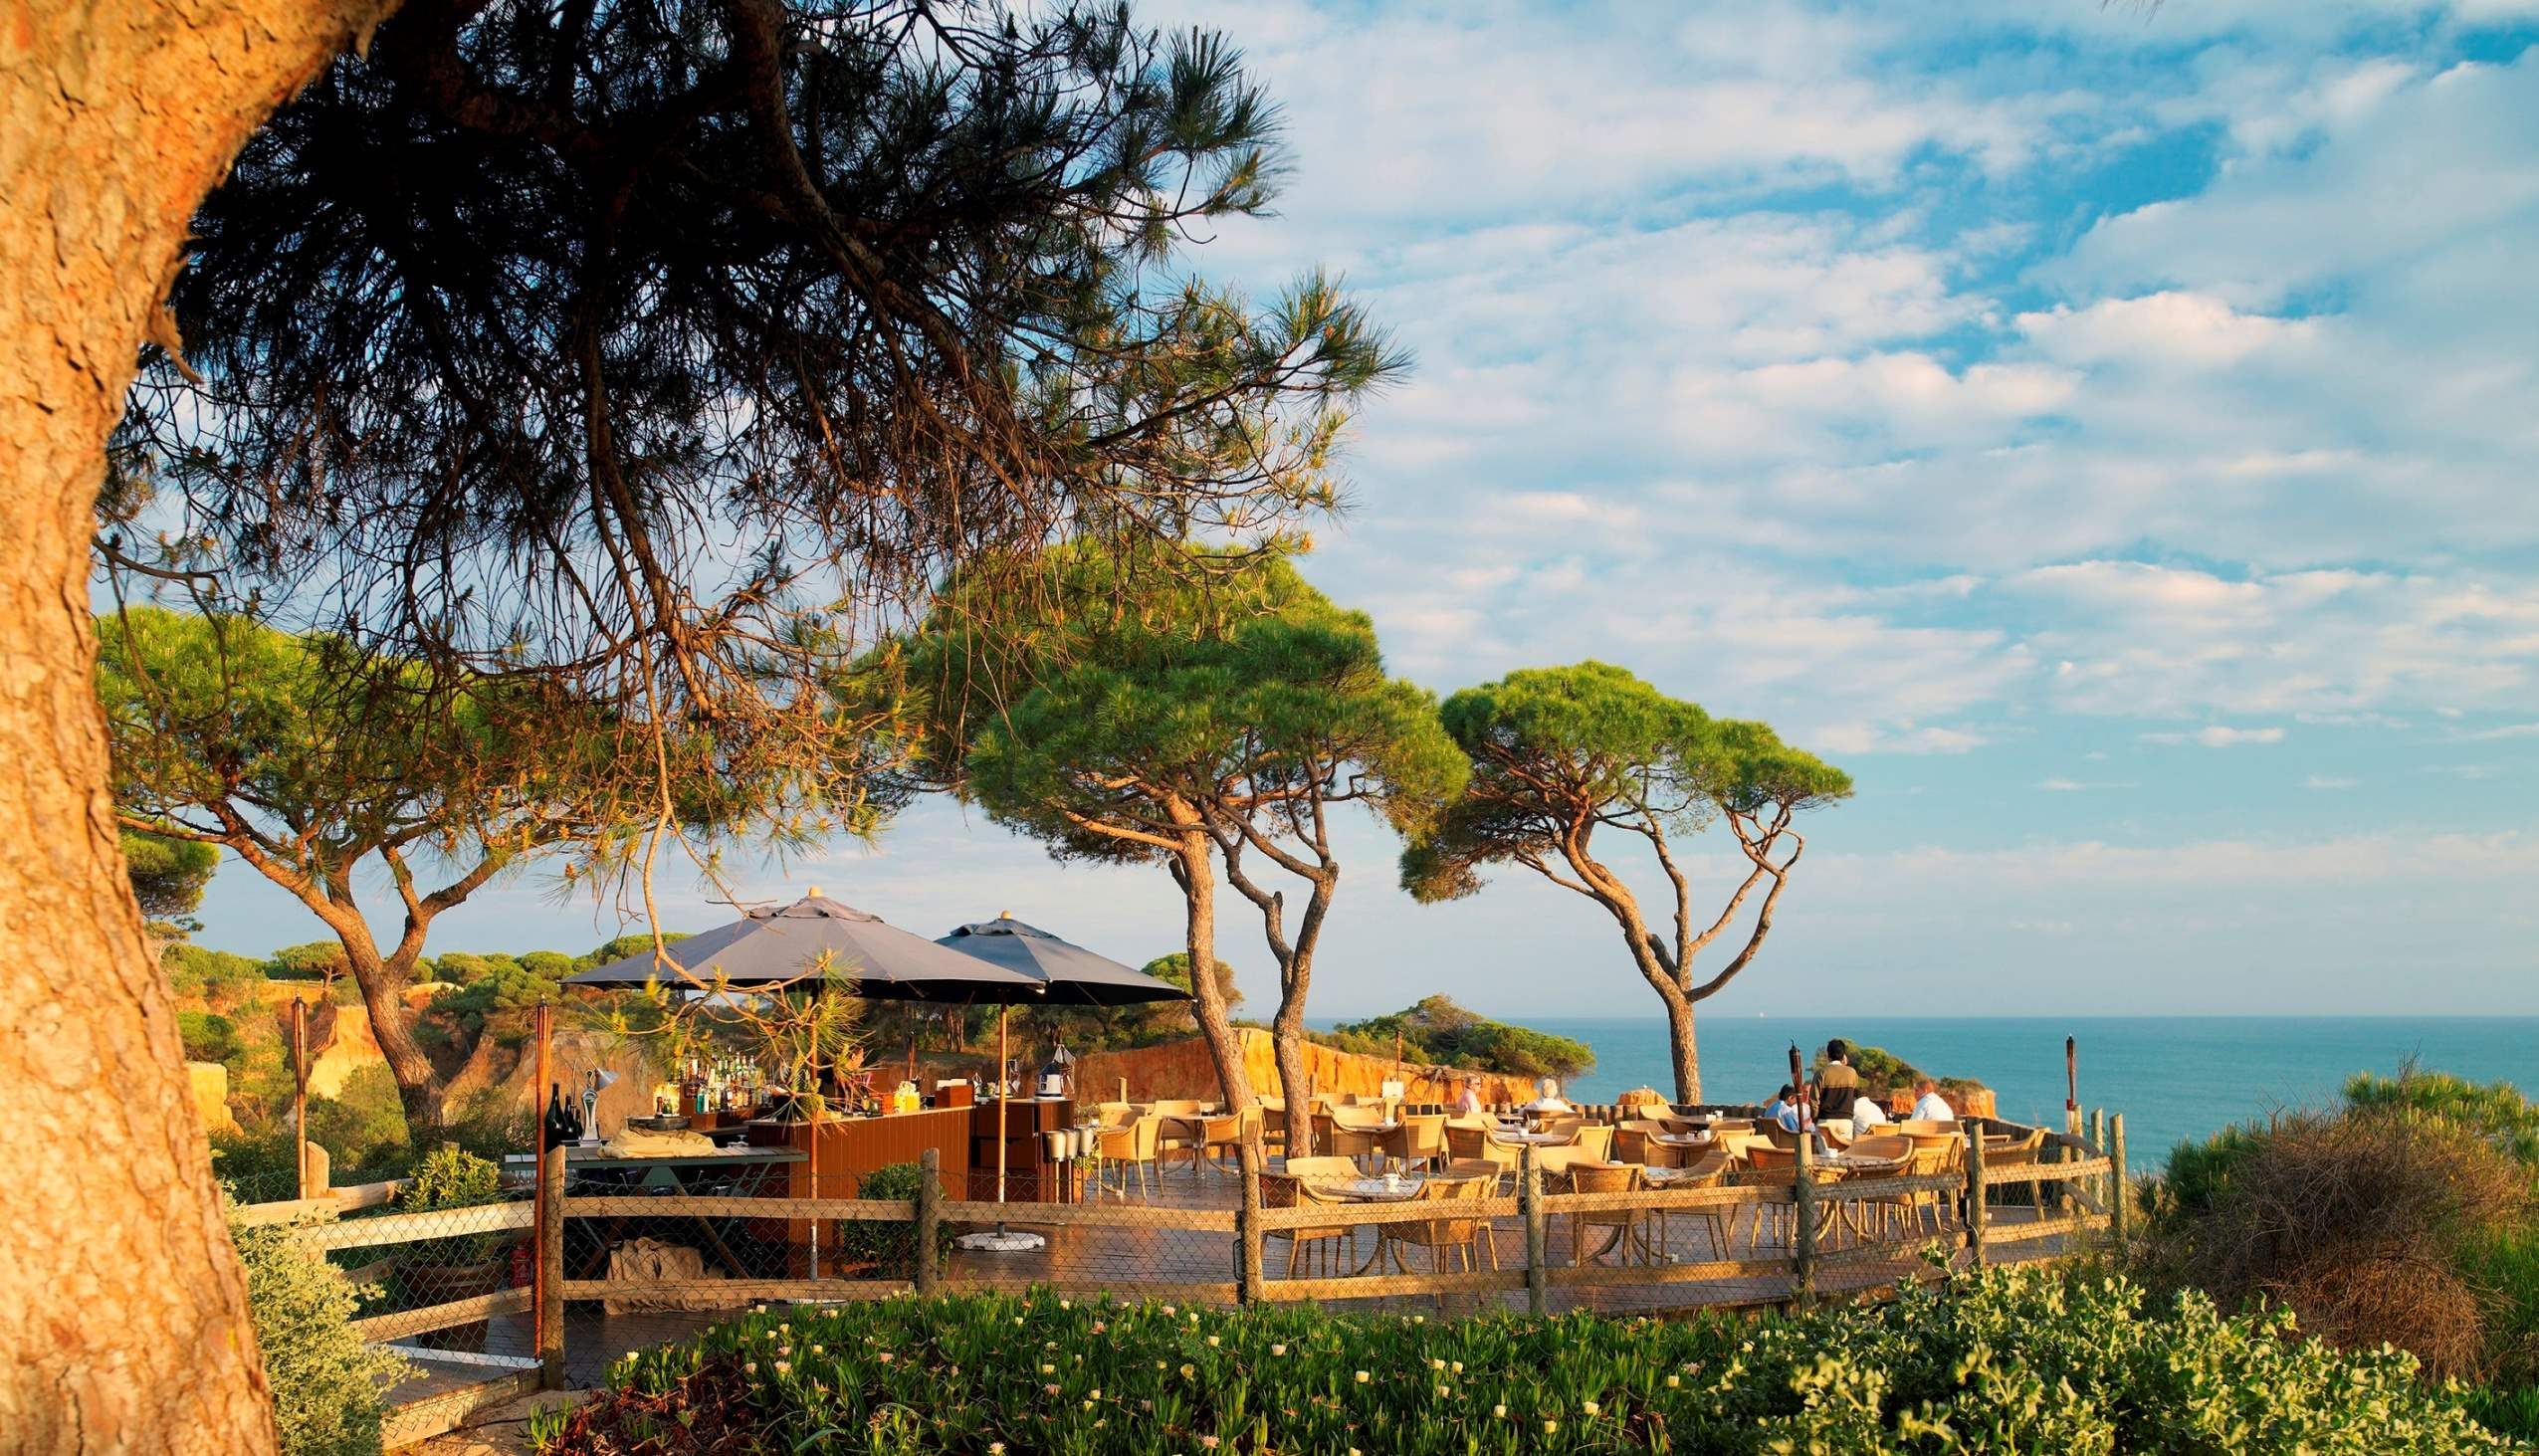 Pine Cliffs Terraces, 2 Bedroom, room only basis , 2 bedroom villa in Pine Cliffs Resort, Algarve Photo #24